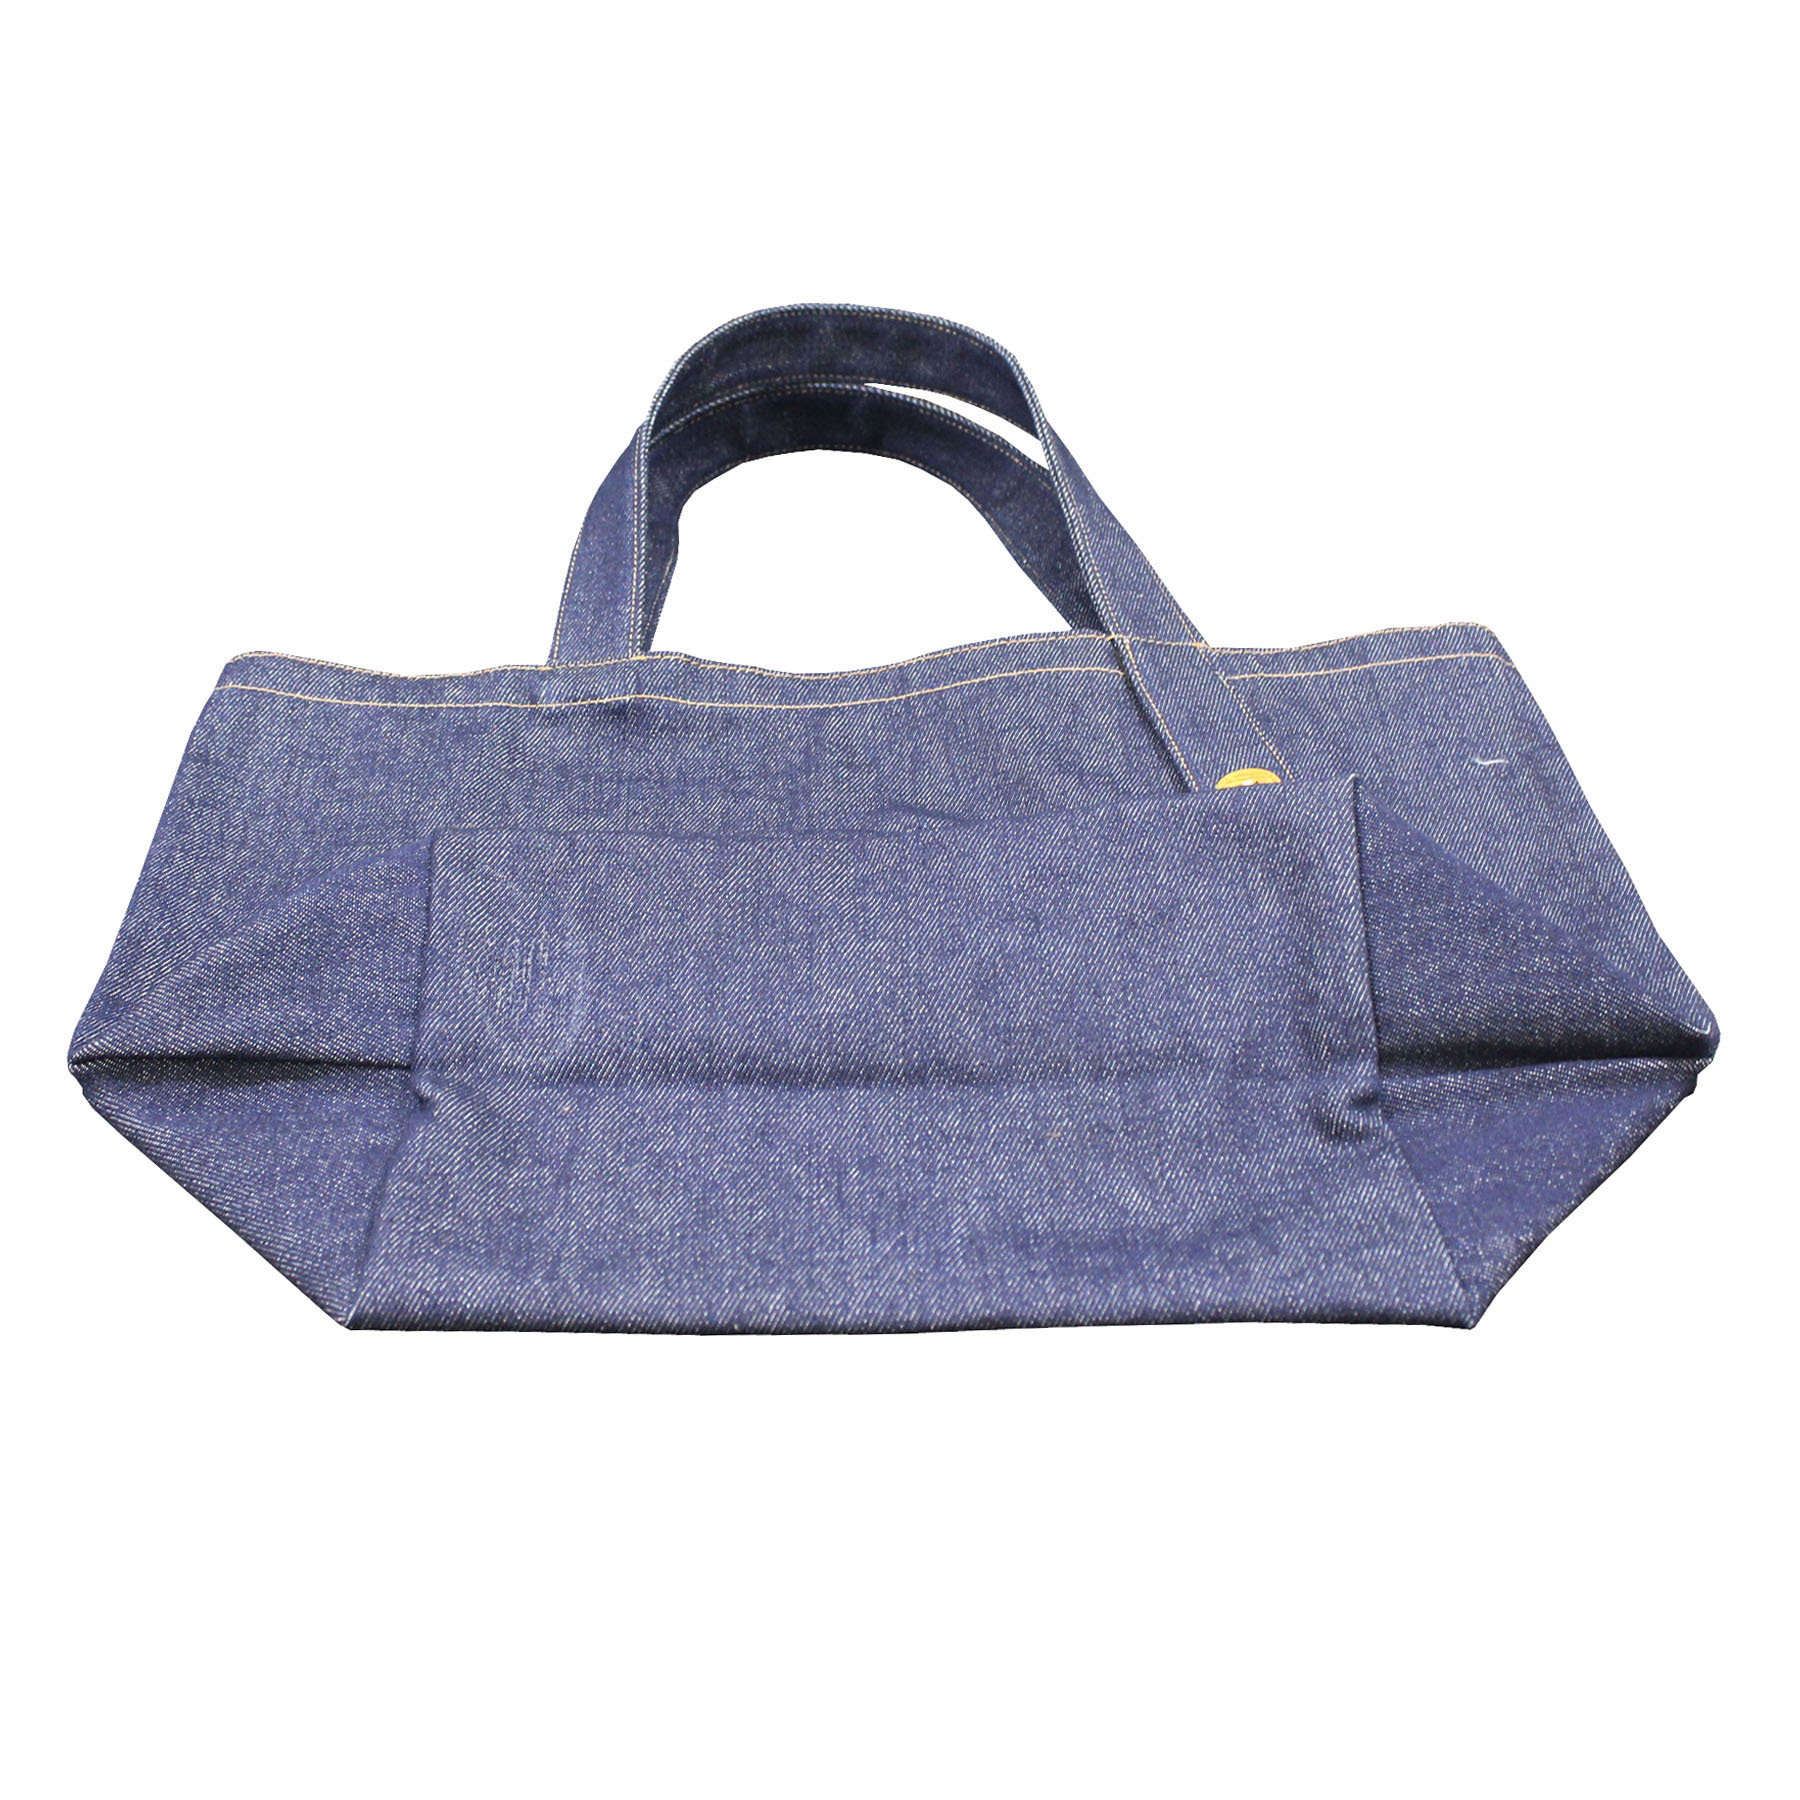 12 Oz Natural Canvas & Denim Tote Bag With Designer Handle